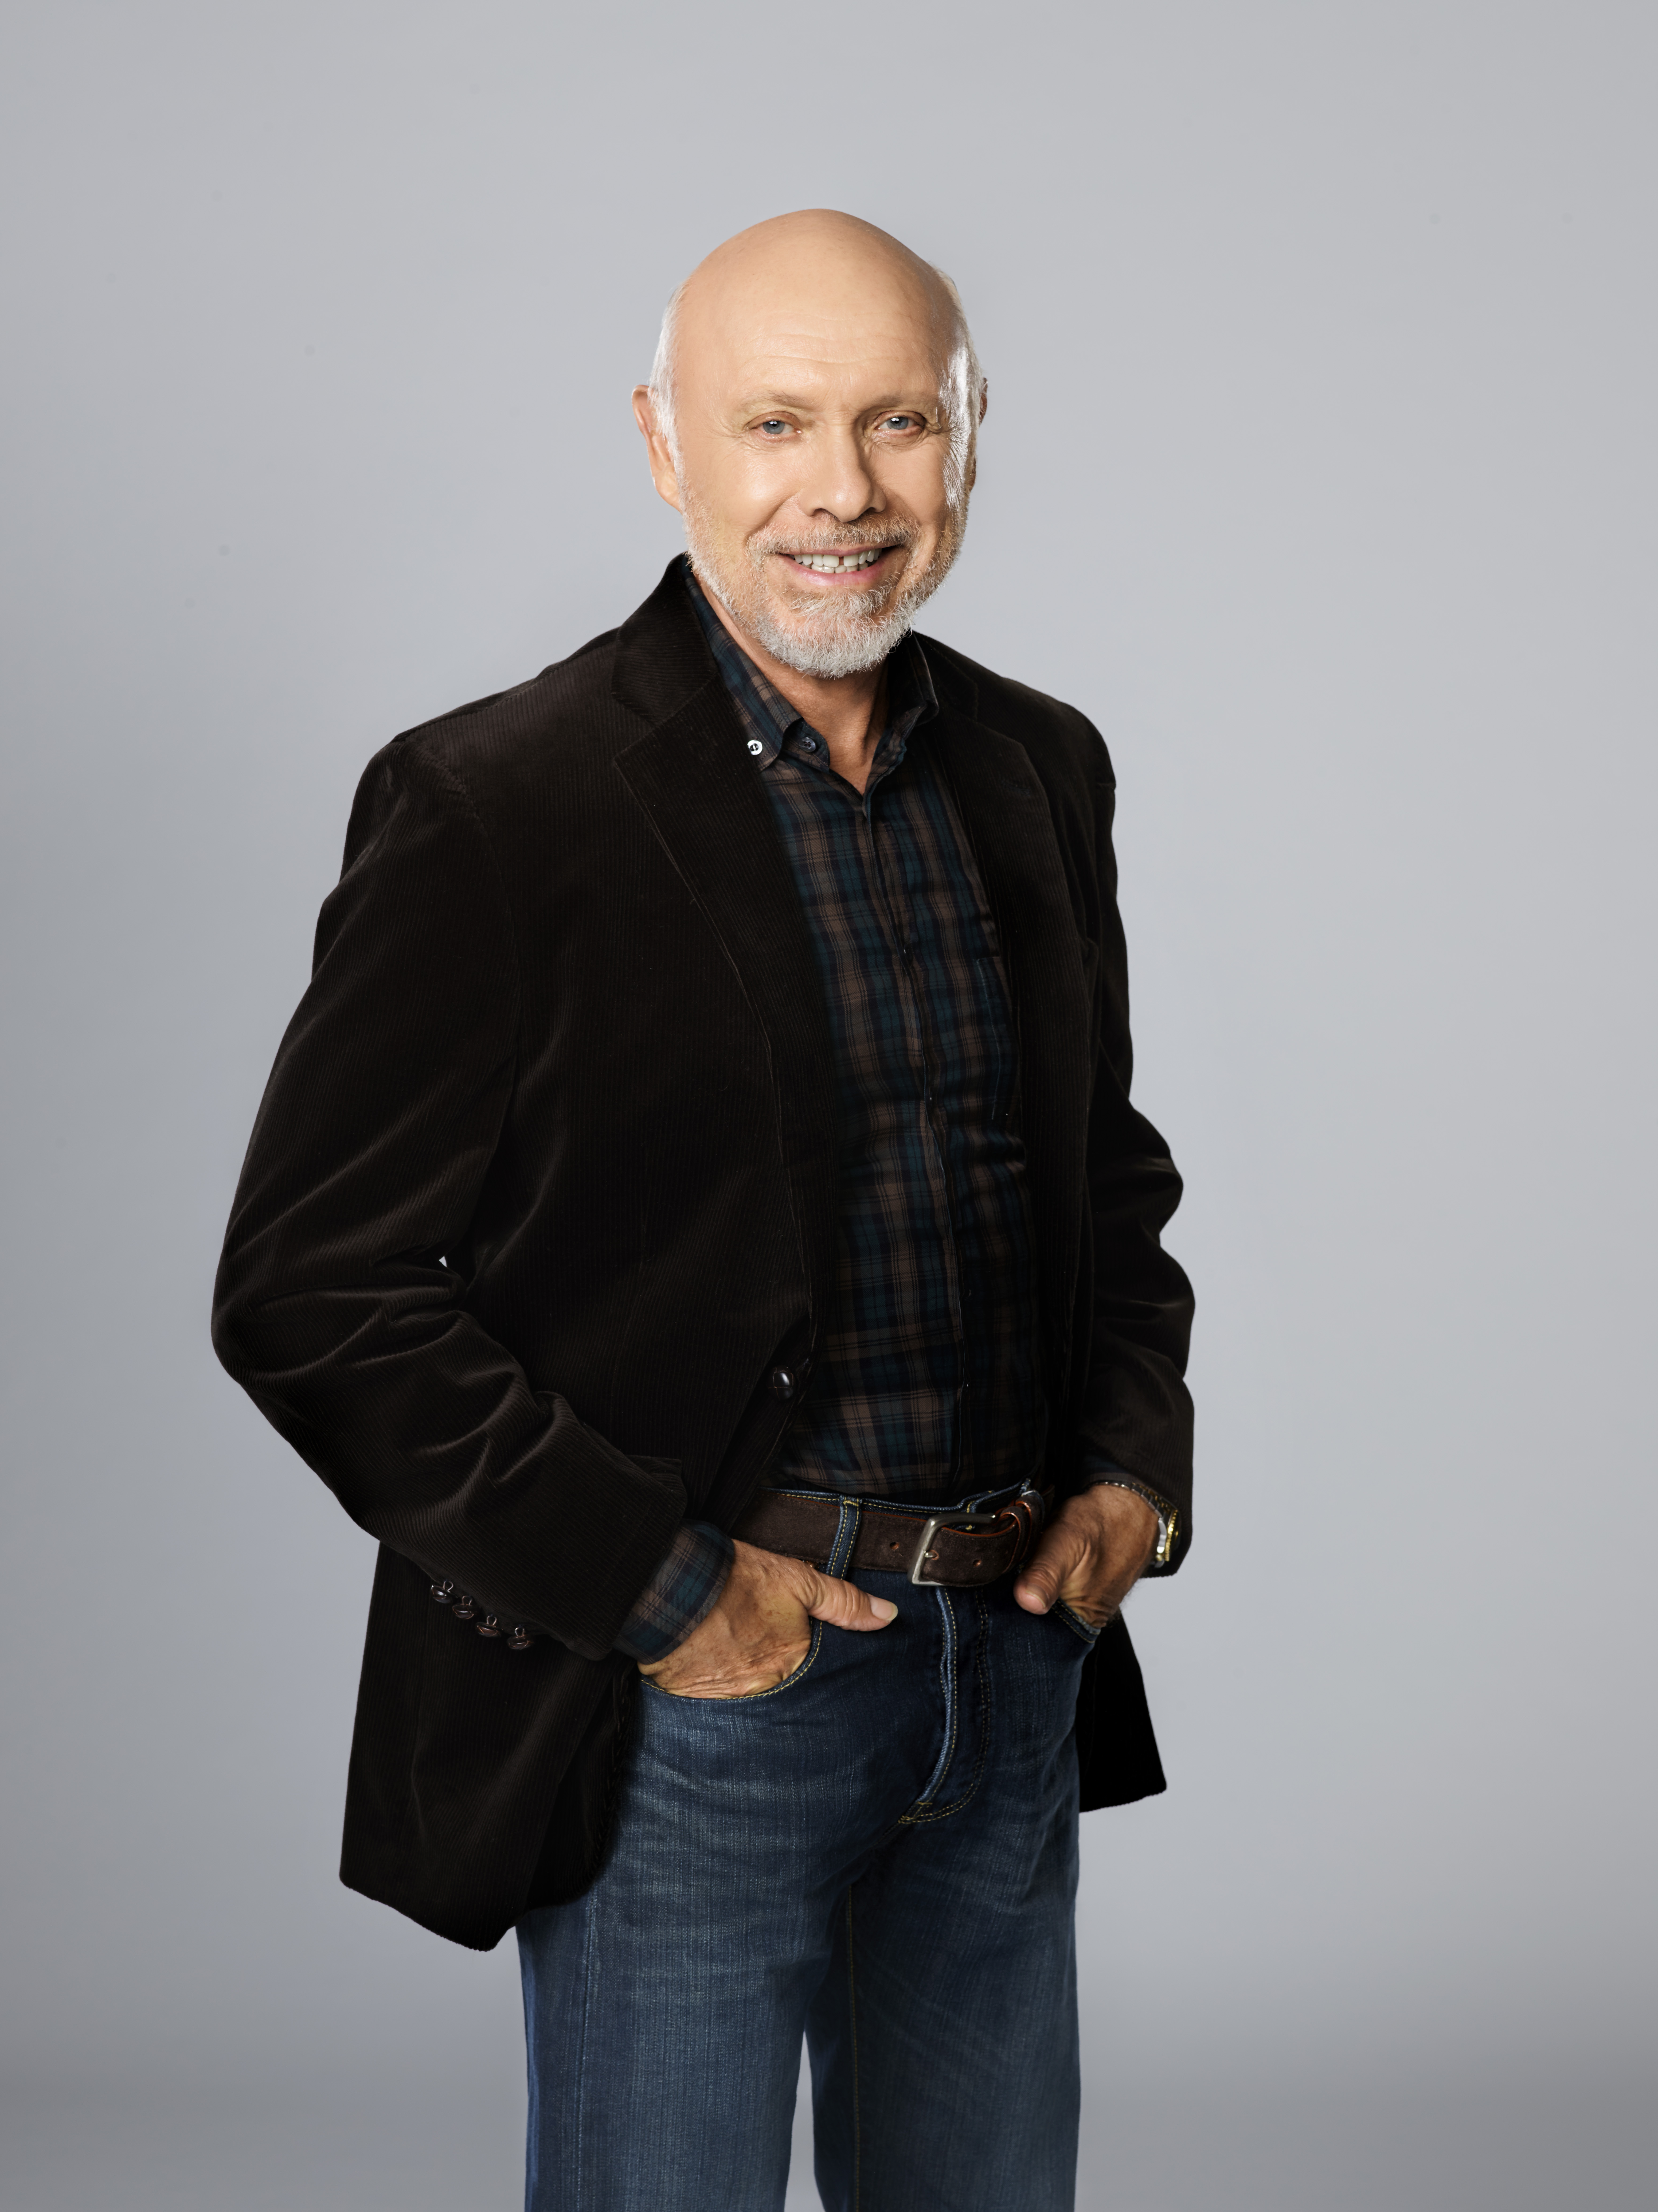 hector elizondo daughterhector elizondo instagram, hector elizondo wife, hector elizondo daughter, hector elizondo speaking spanish, hector elizondo, hector elizondo movies, hector elizondo pretty woman, hector elizondo filmography, hector elizondo julie andrews, hector elizondo filmographie, hector elizondo sitcom, hector elizondo net worth, hector elizondo died, hector elizondo imdb, hector elizondo movies and tv shows, hector elizondo american dad, hector elizondo grey's anatomy, hector elizondo alzheimer's, hector elizondo habla español, hector elizondo biography